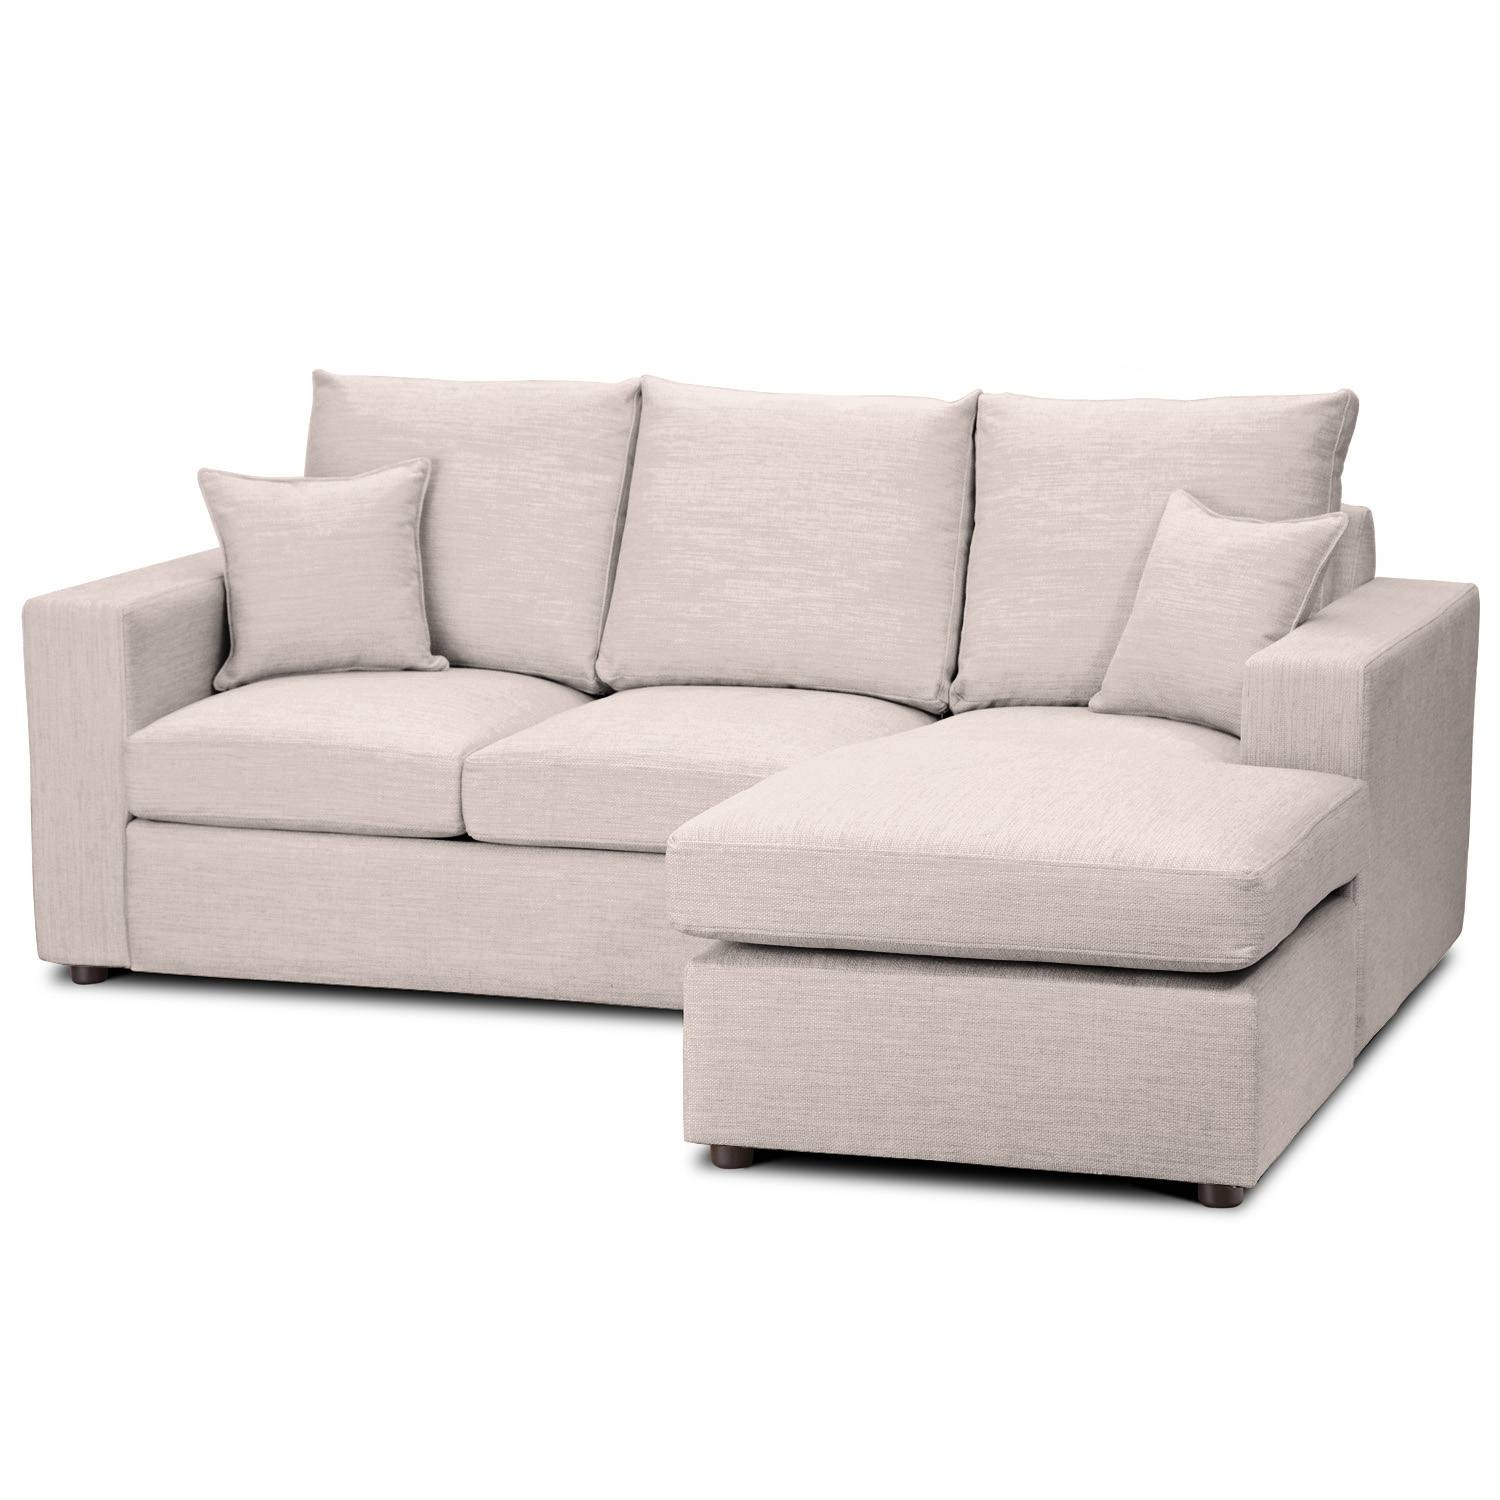 Sofas: Classic Meets Contemporary Chaise Sofa Bed For Ideal Living pertaining to Cushion Sofa Beds (Image 27 of 30)